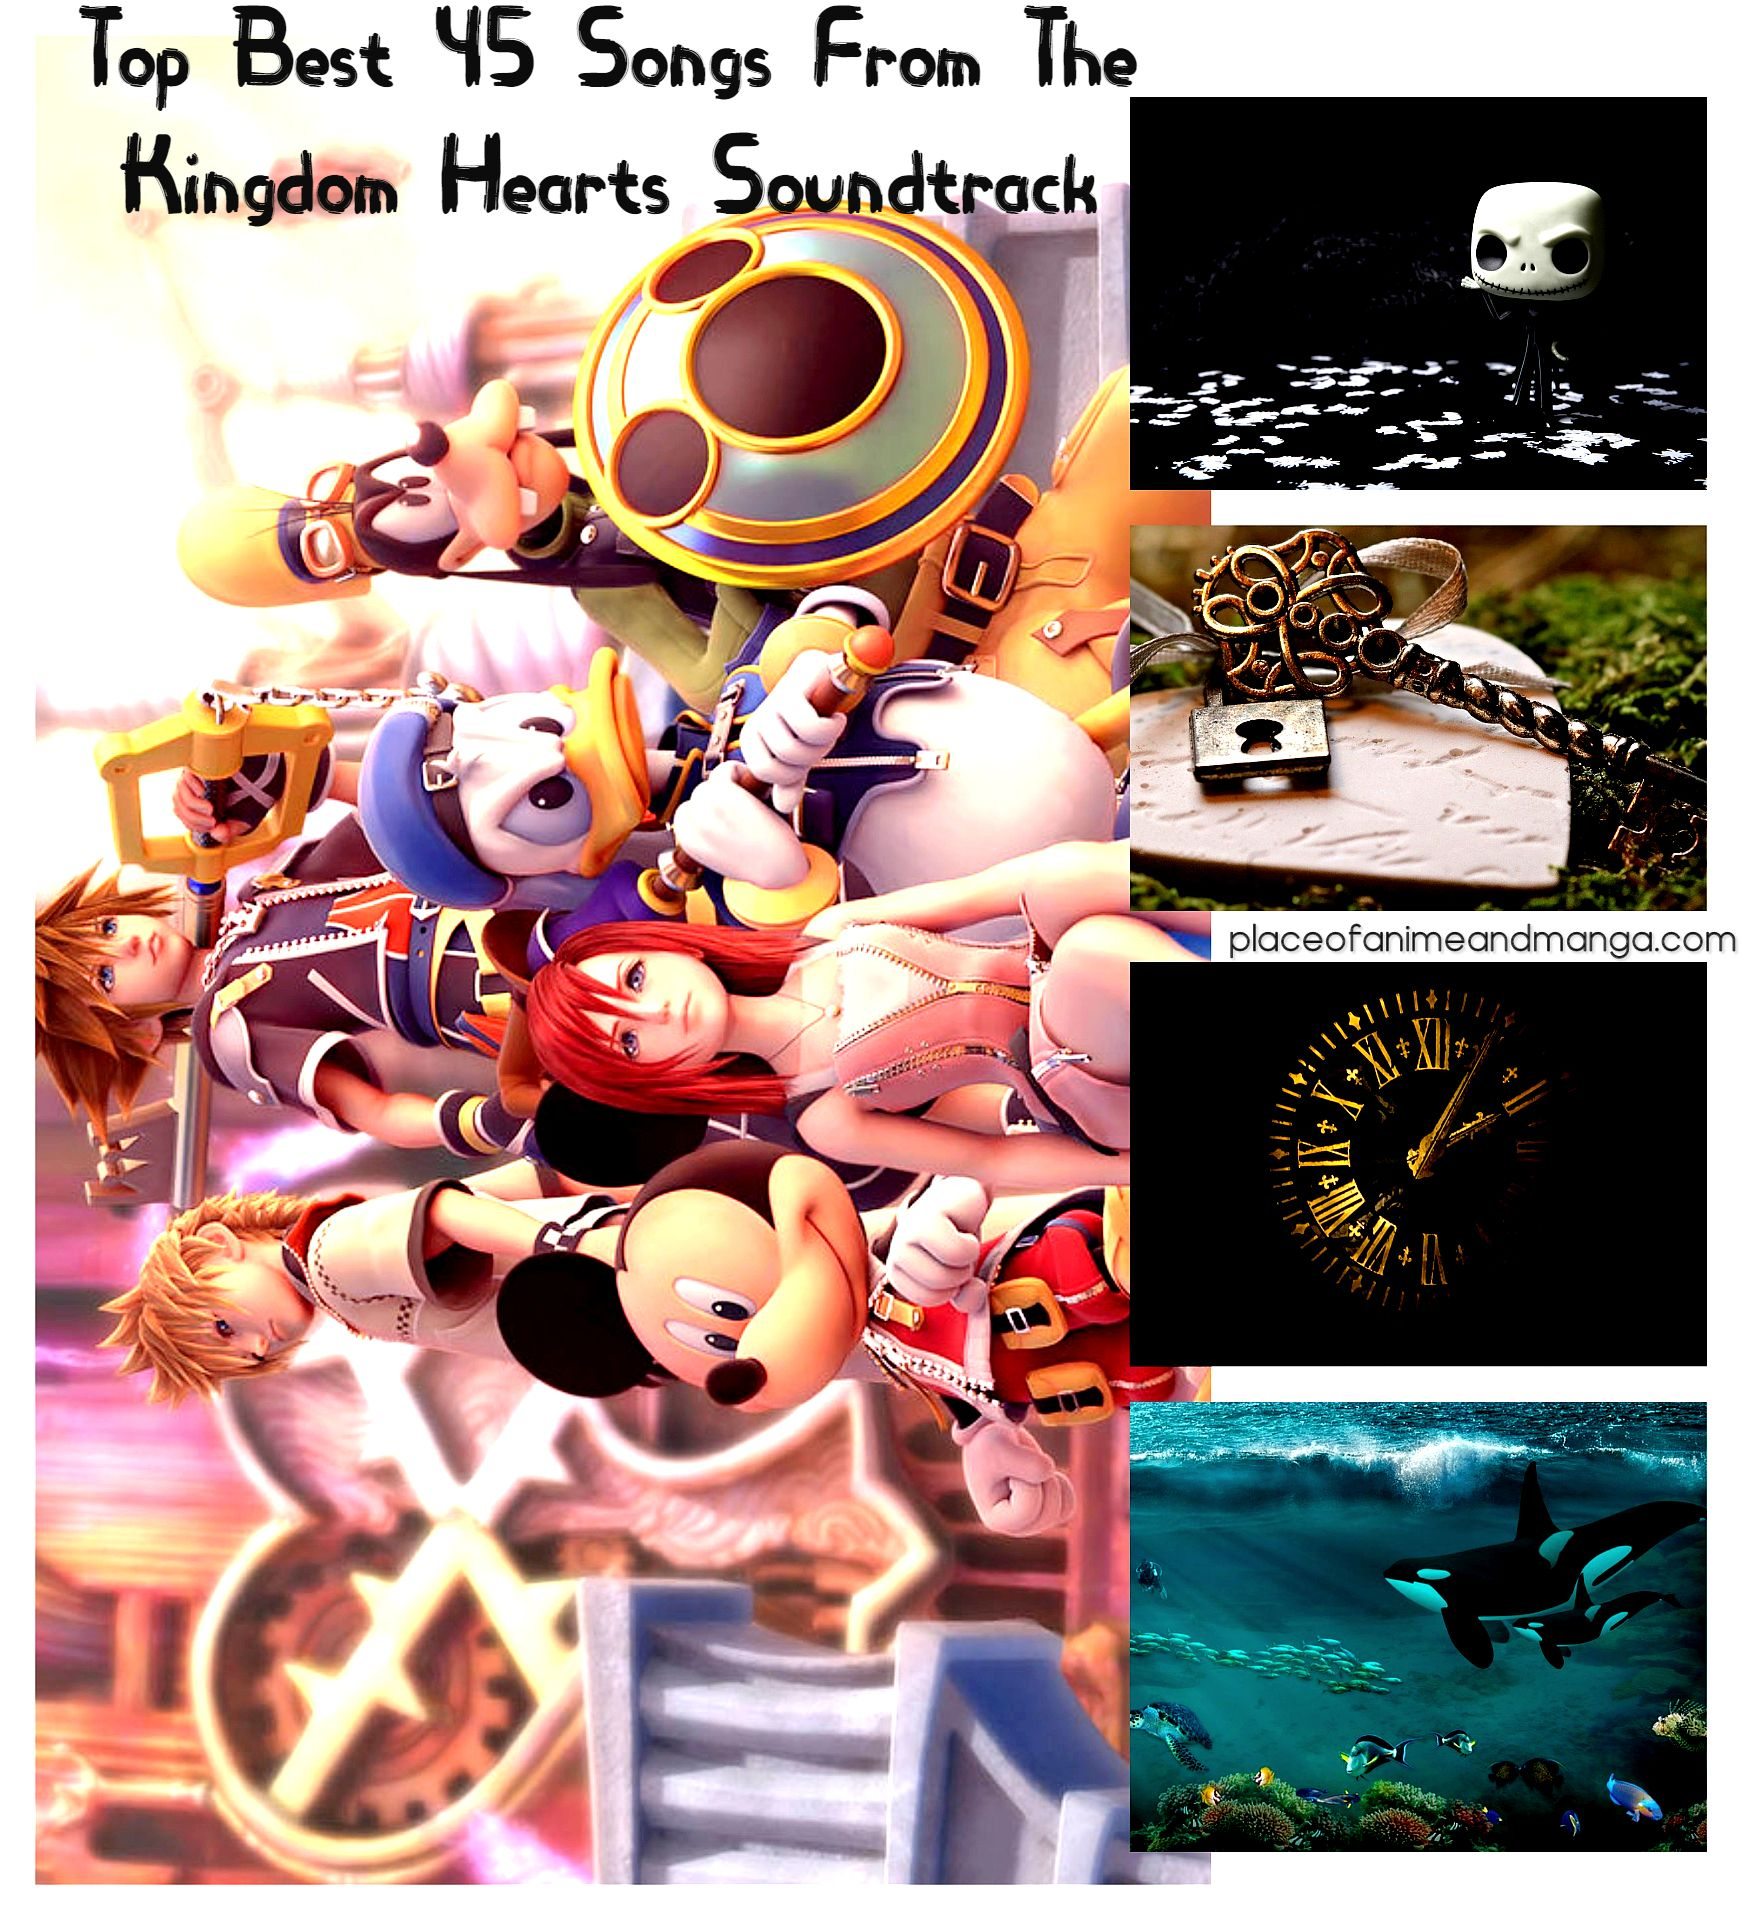 top 45 best music songs from kingdom hearts 1 2 3 キングダム ハーツ rpg square enix game music kingdom hearts soundtrack kingdom hearts japanese animation